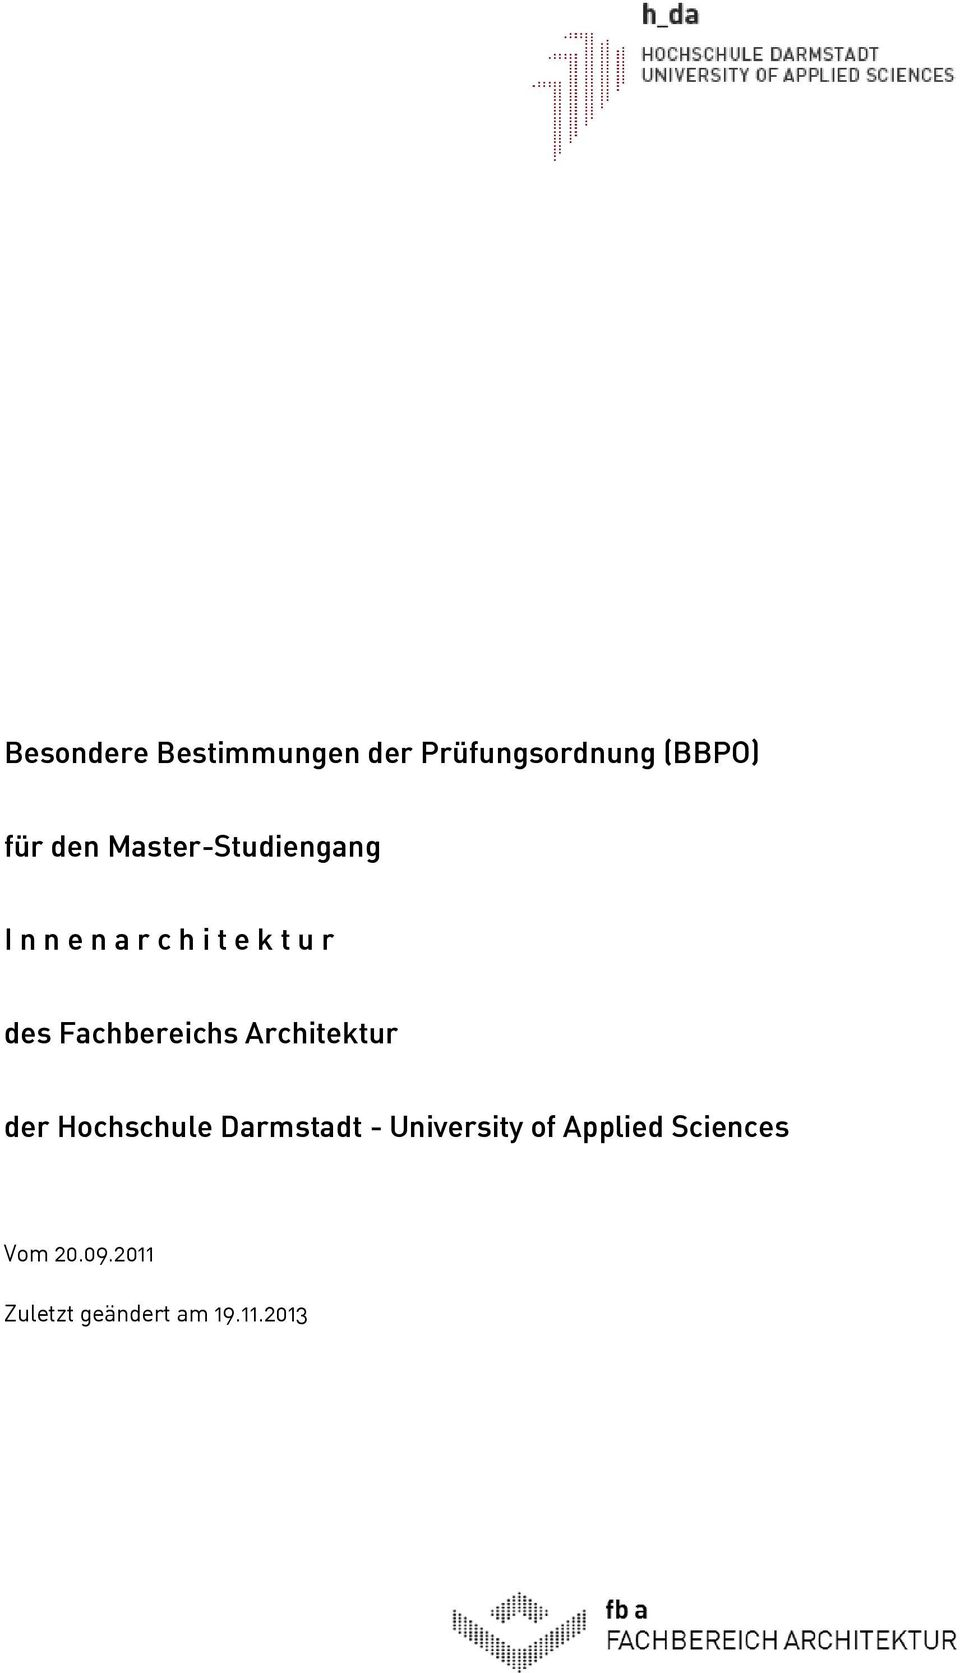 Innenarchitektur Hda Der Hochschule Darmstadt University Of Applied Sciences Pdf